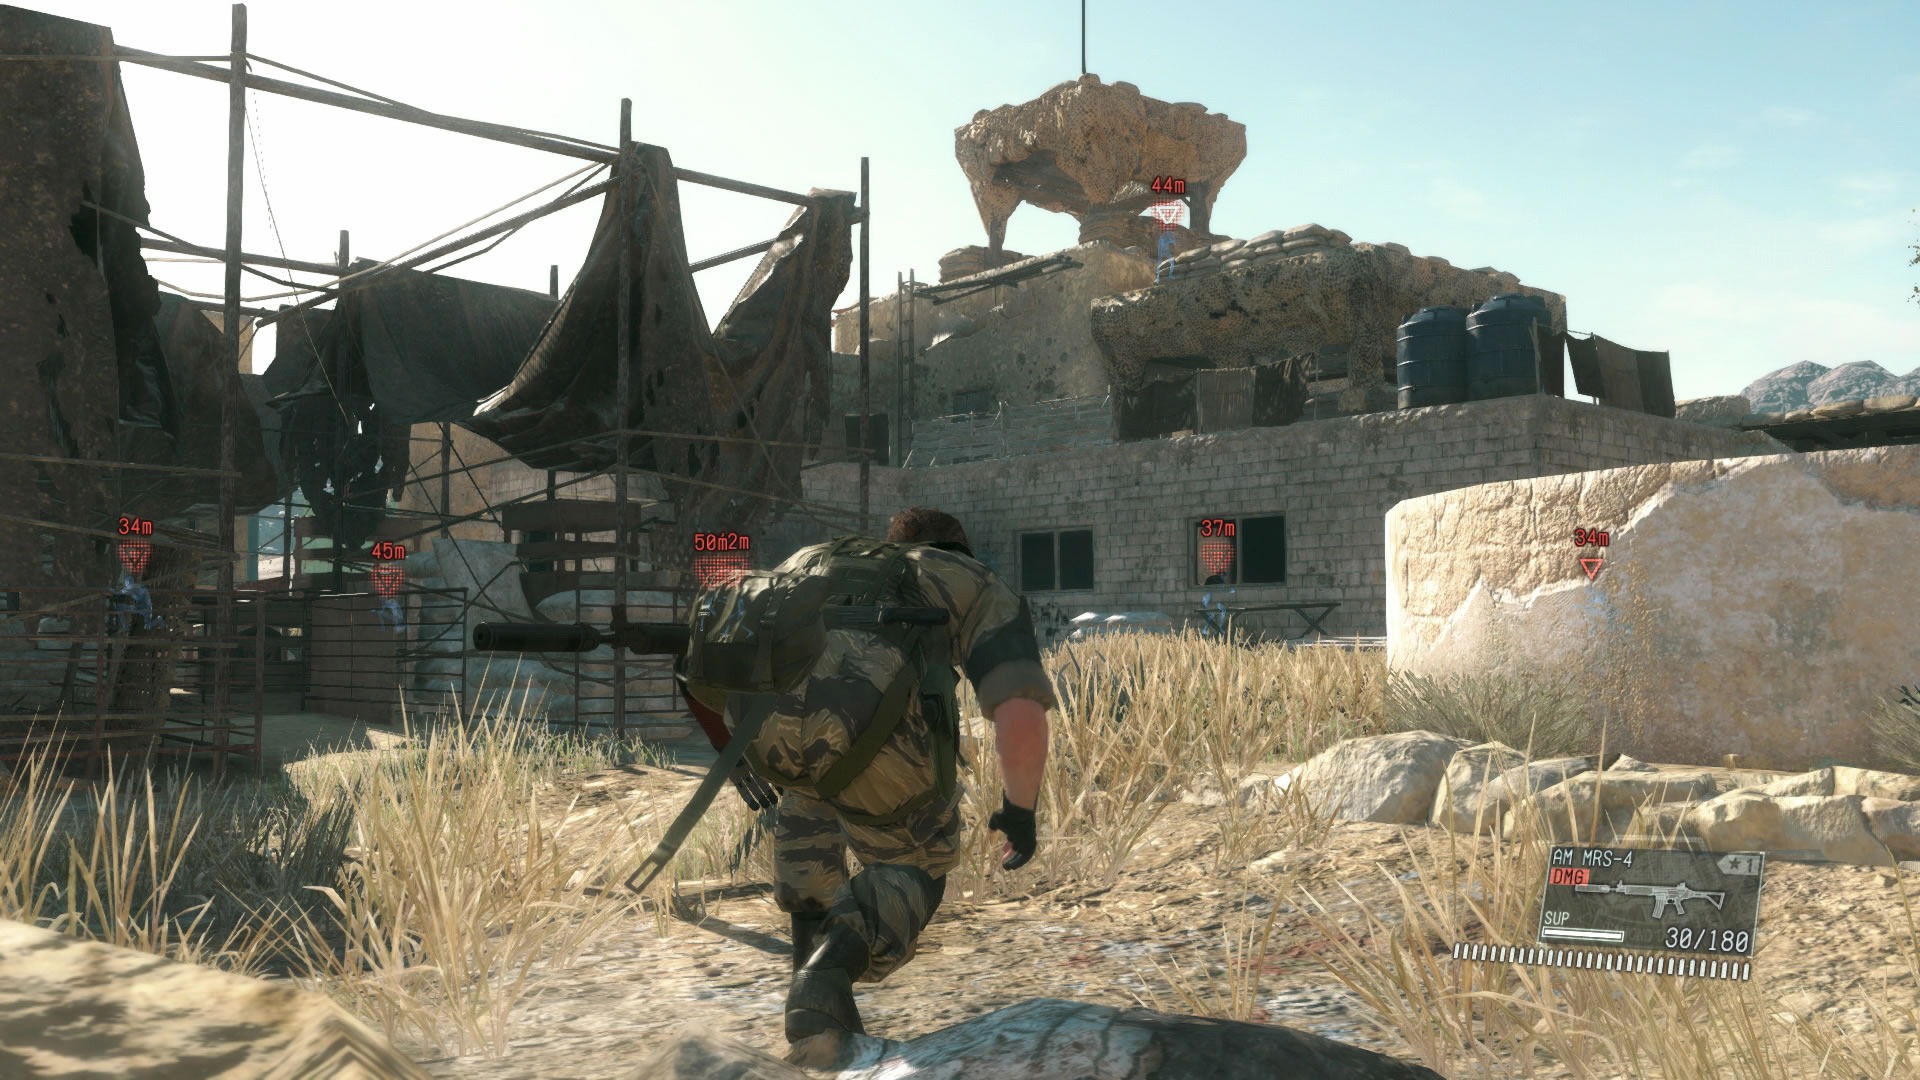 Metal Gear Solid 5 - Memento Photos Location Guide - Extract